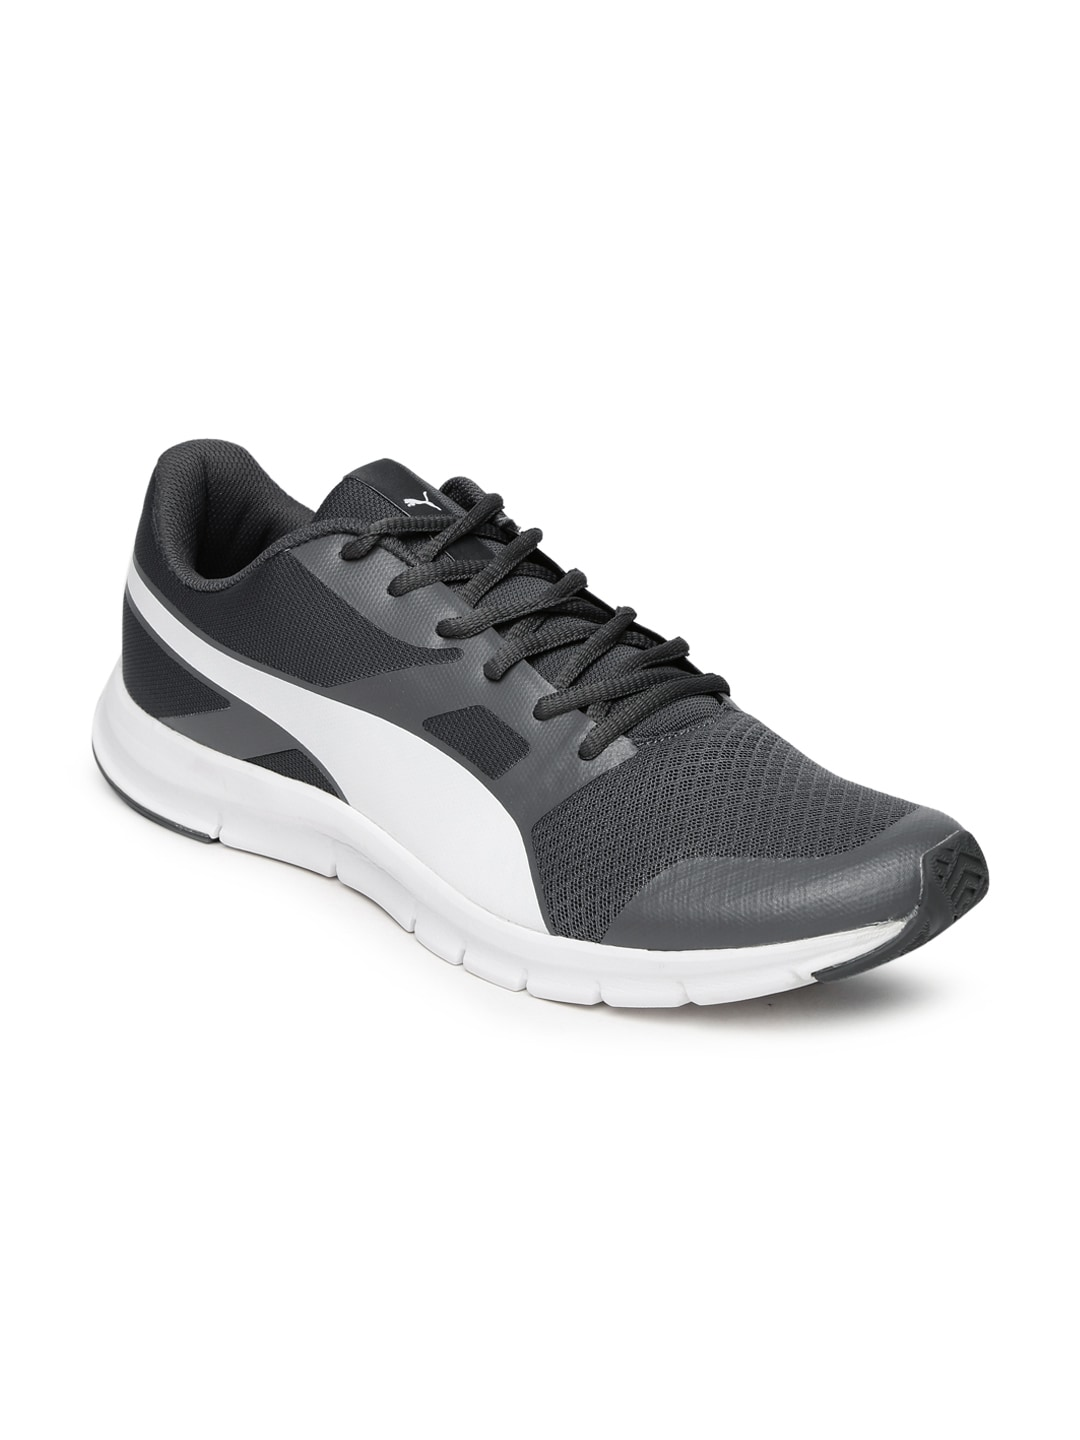 6d40cc90ad5521 Buy PUMA Unisex Grey Bolster DP Running Shoes - Sports Shoes for ...